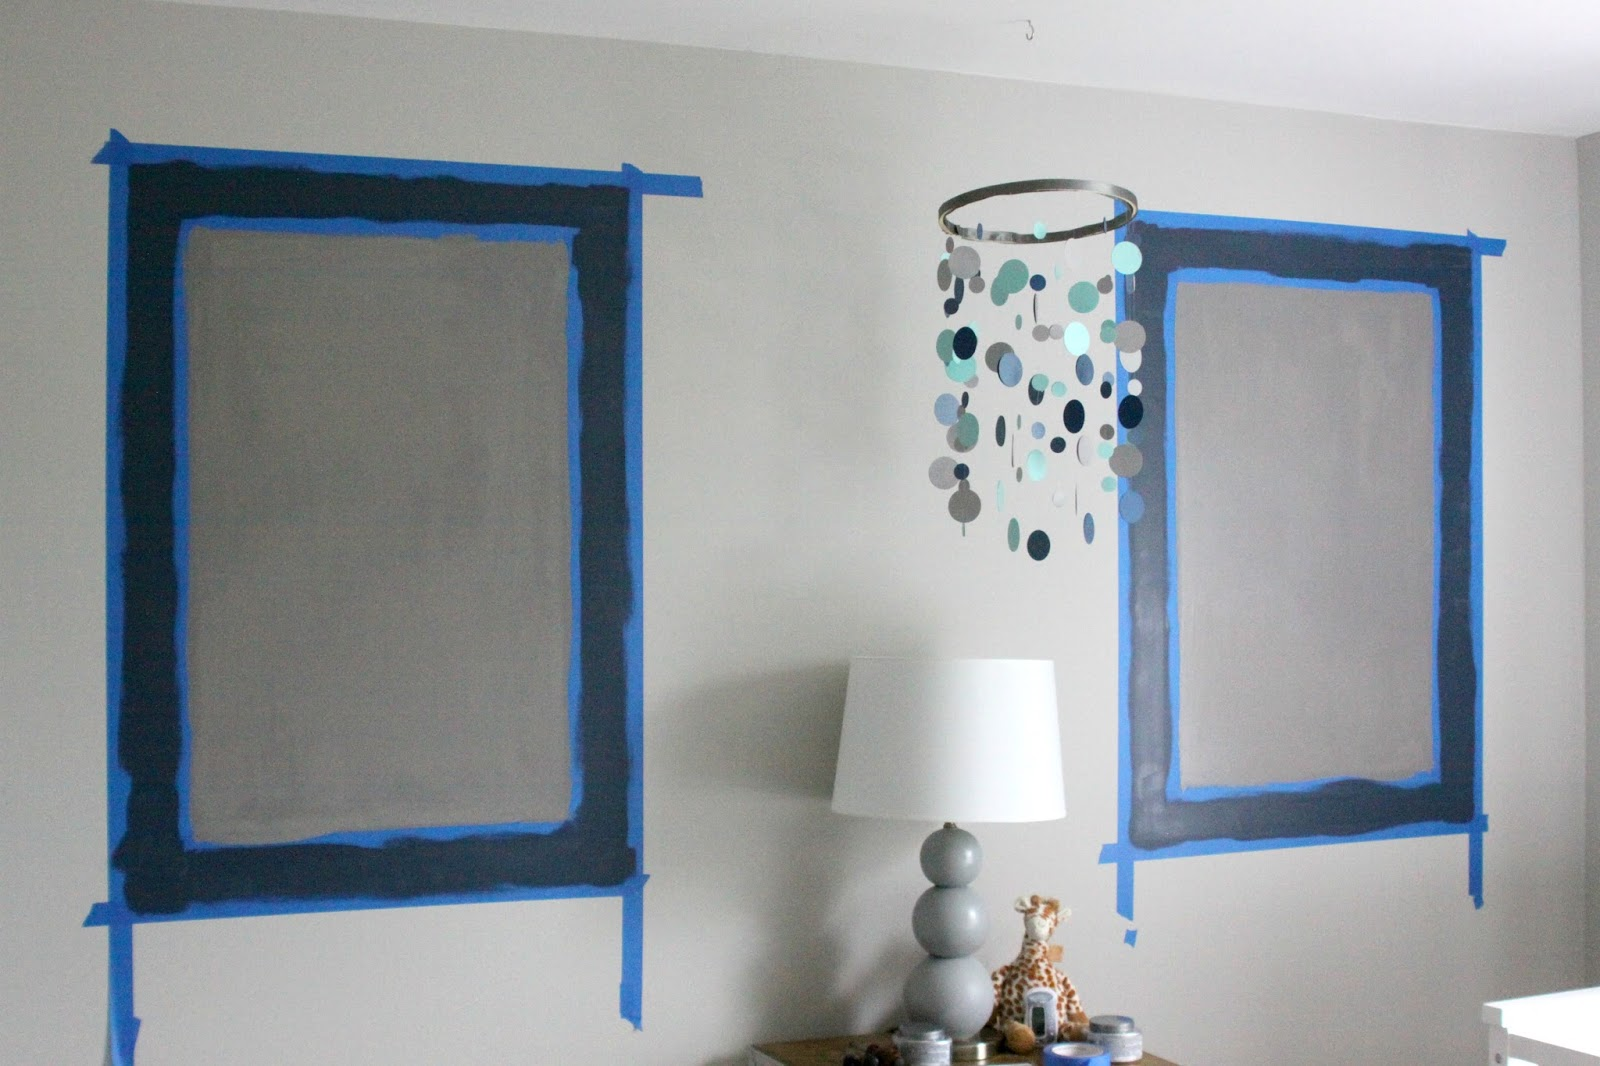 Our Pinteresting Family: Painted Wall Frames for the Nursery